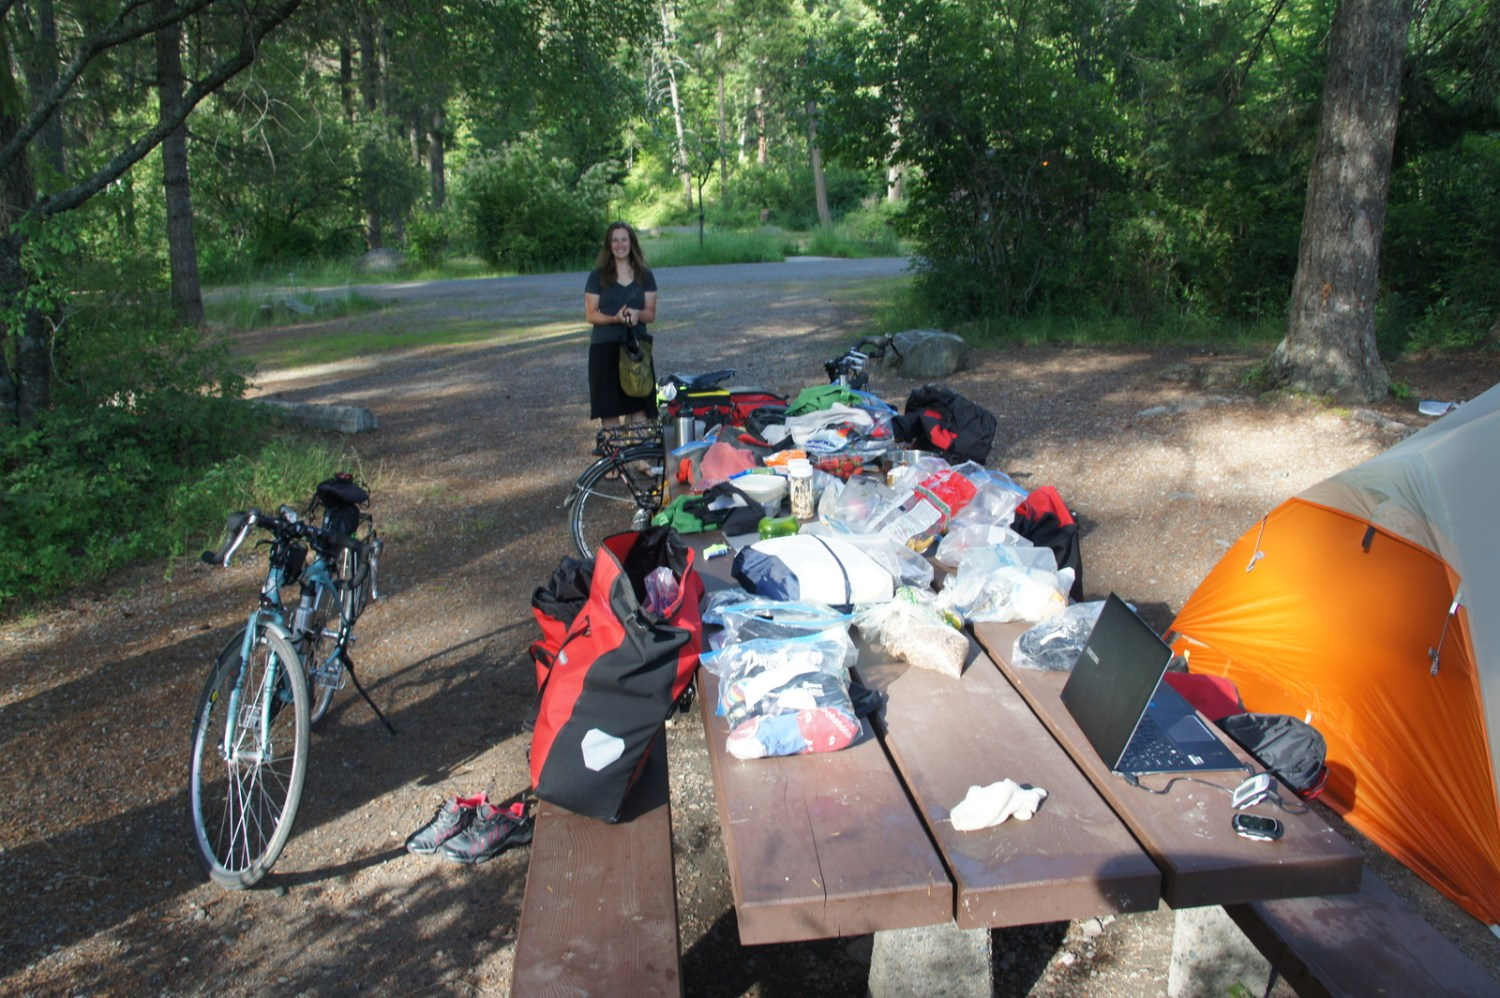 Does all this stuff really fit in six panniers? Exploding Travel Gear Inc.